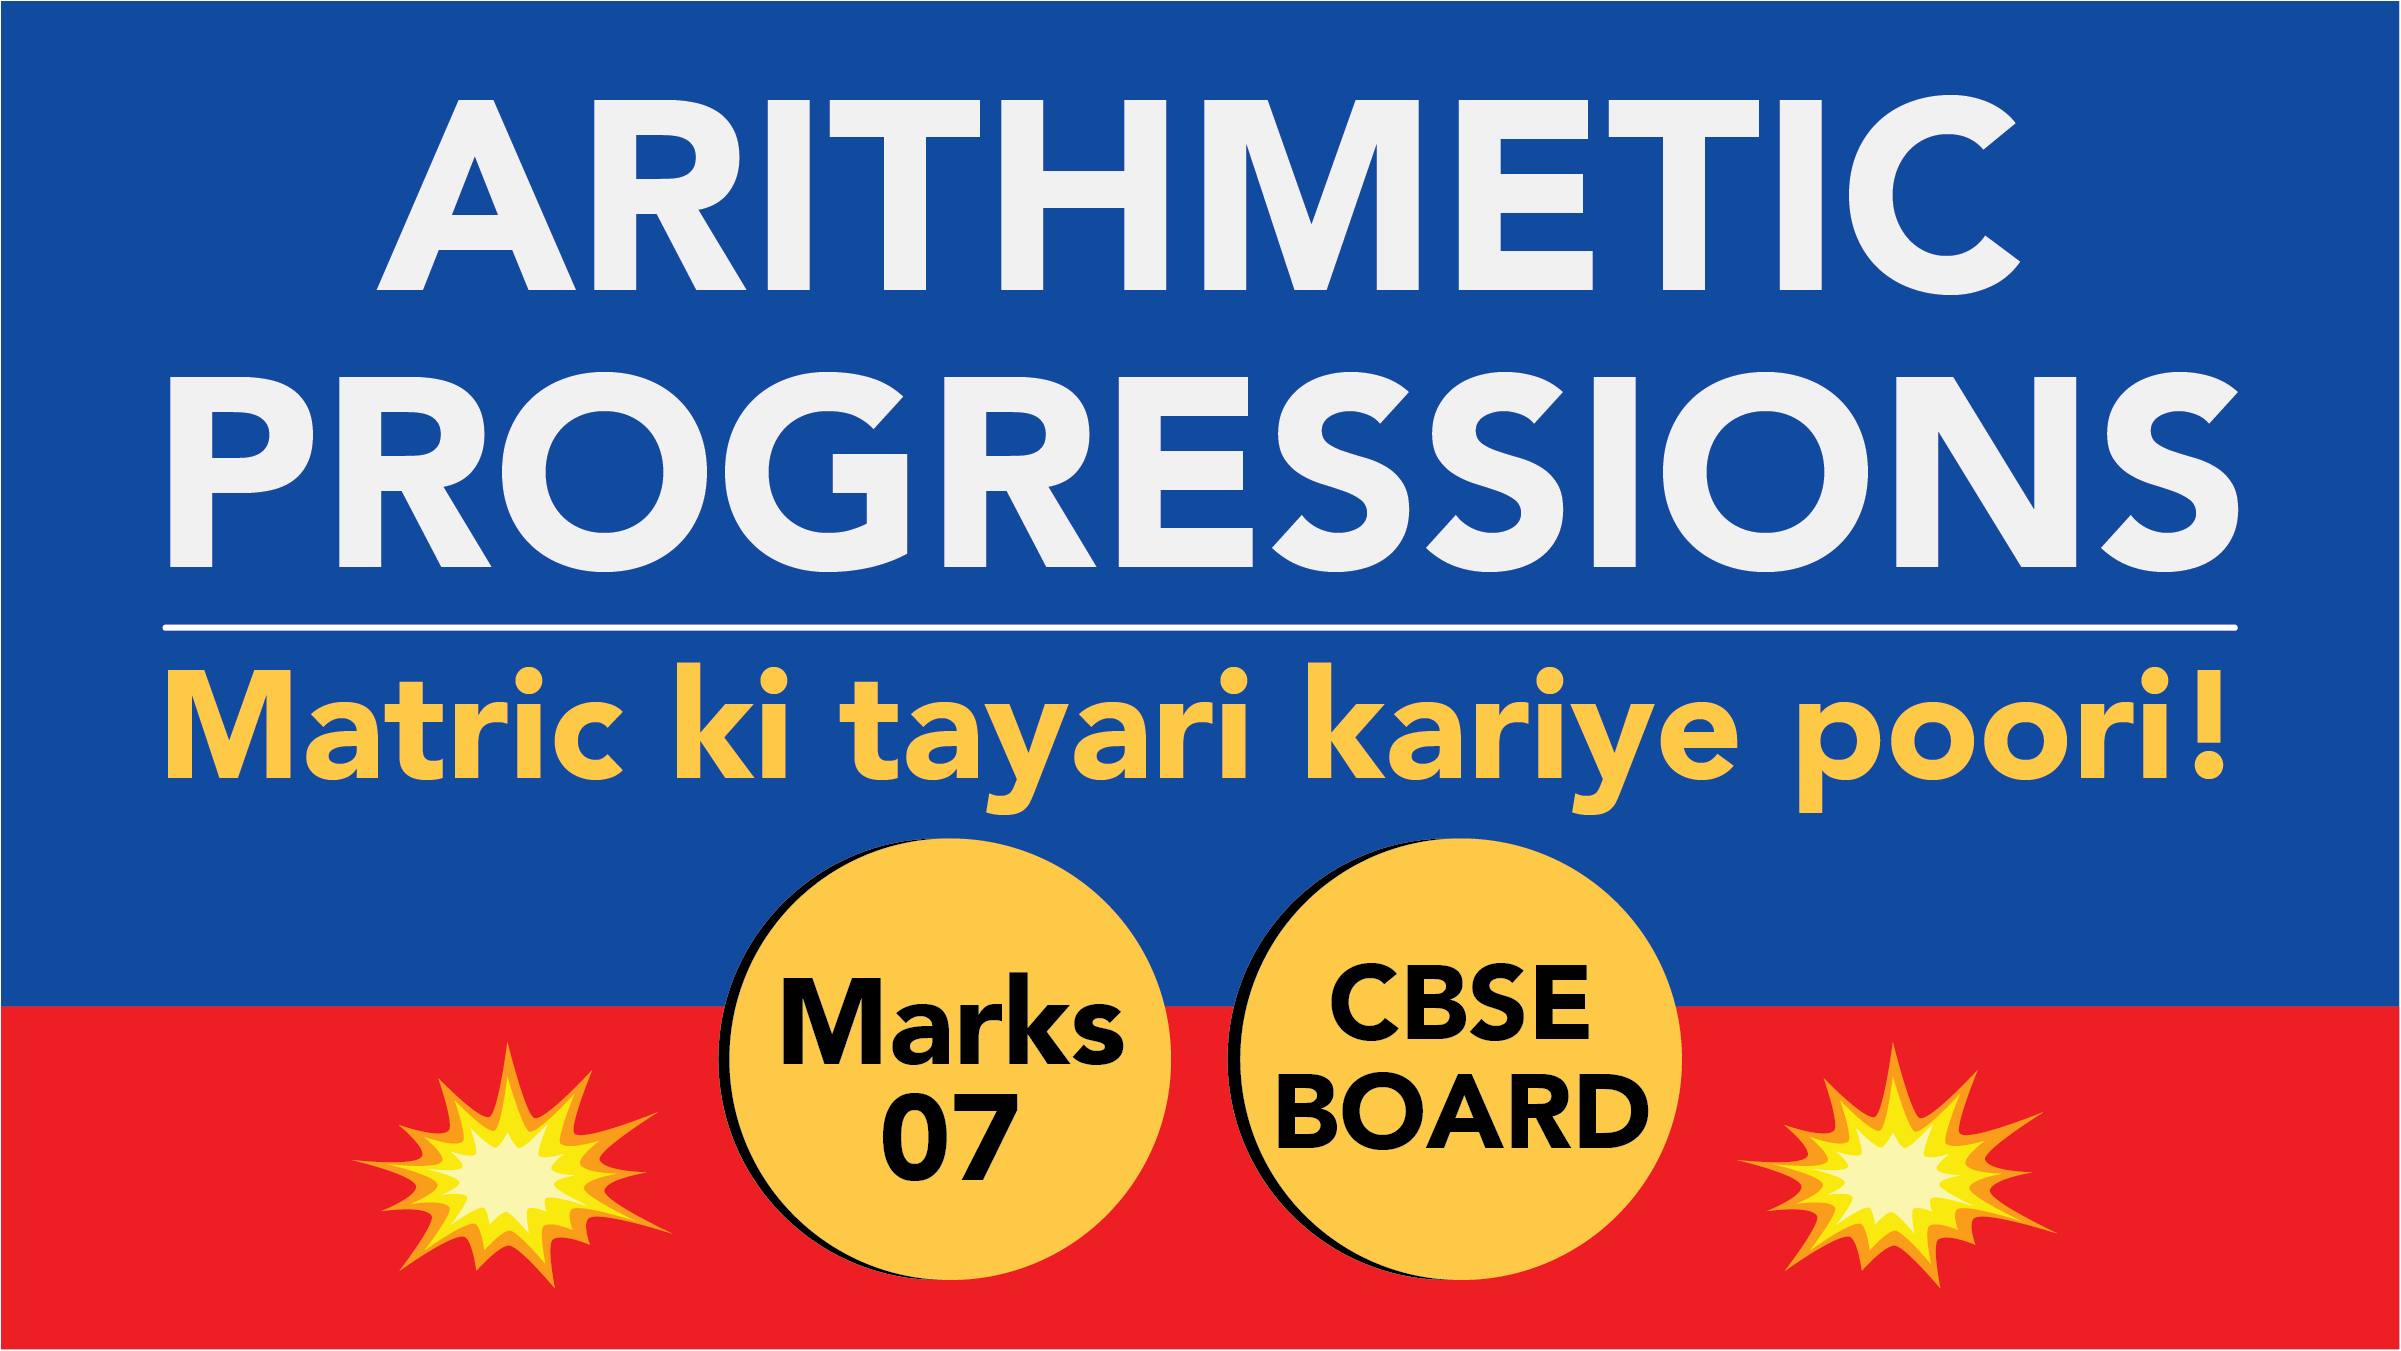 CBSE Board Class 10 ARITHMETIC PROGRESSIONS || Weightage and Important Topics